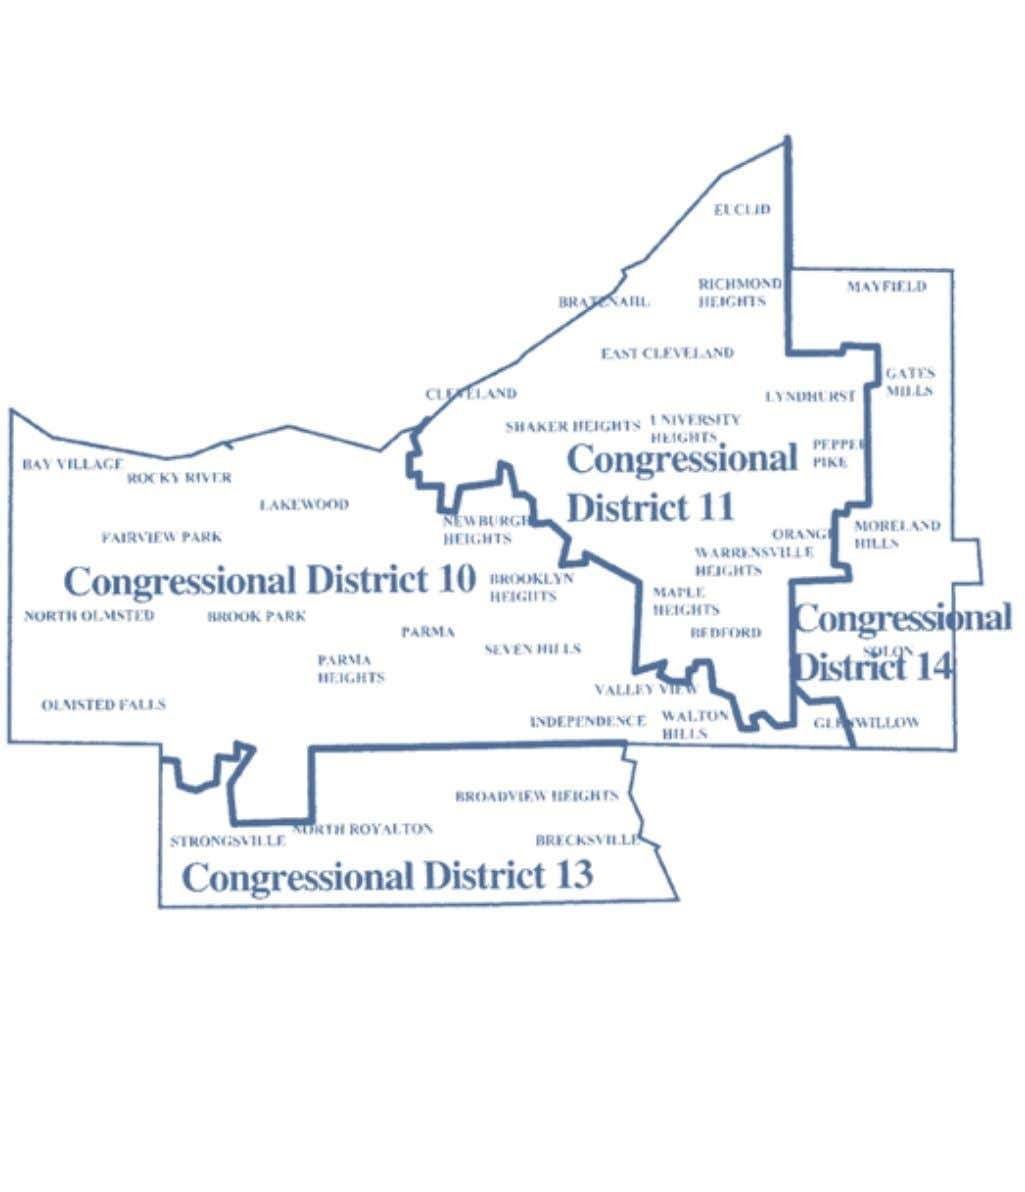 2002-2012 OhiO District Maps Cuyahoga County Congressional Districts 10 Office of the Ohio Secretary of State